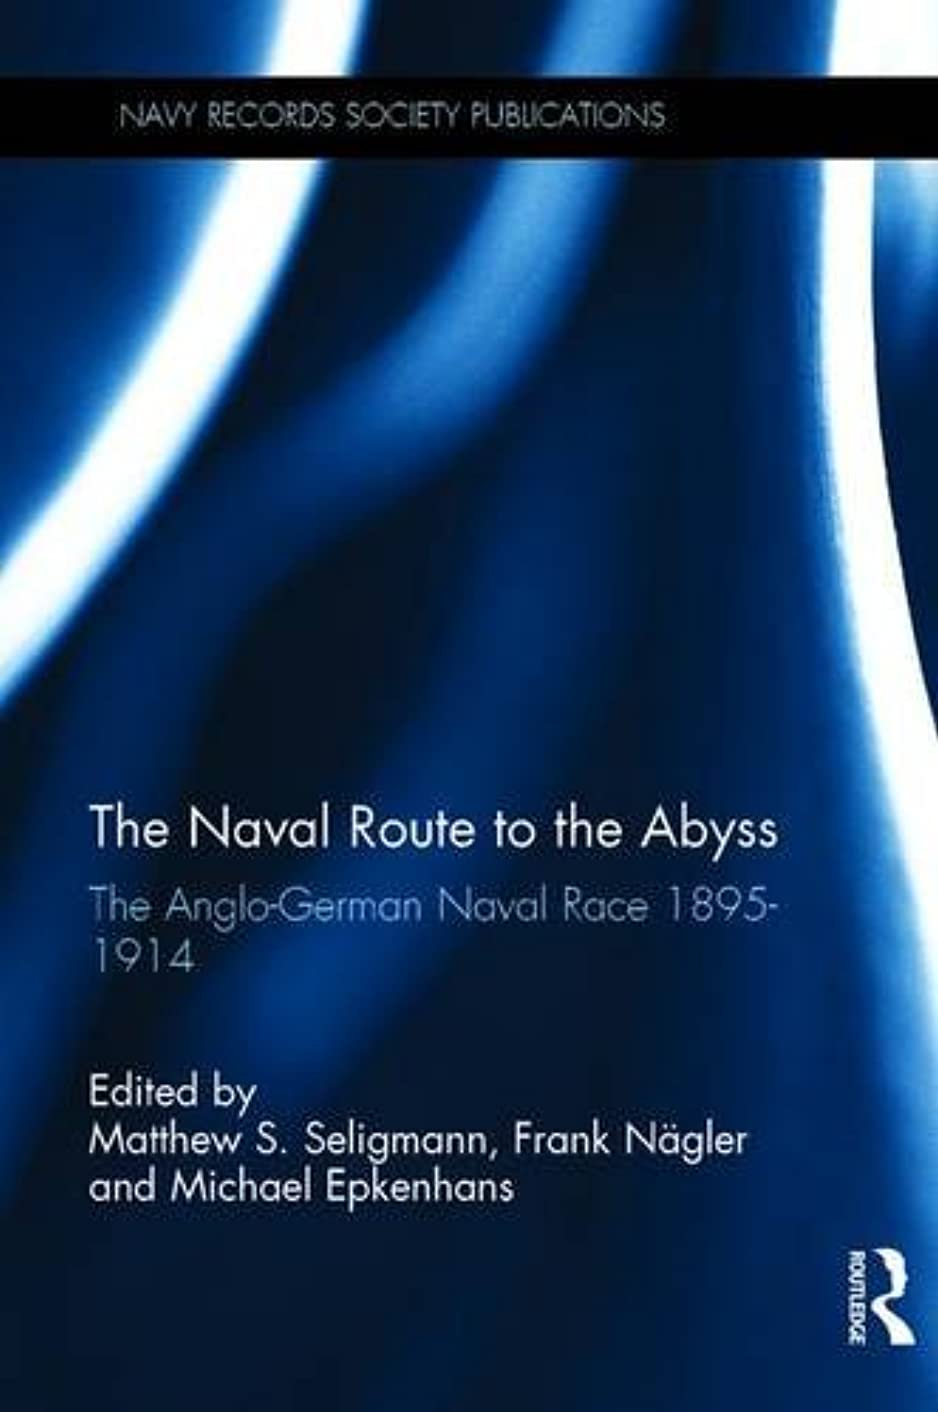 The Naval Route to the Abyss: The Anglo-German Naval Race 1895-1914 (Navy Records Society Publications)